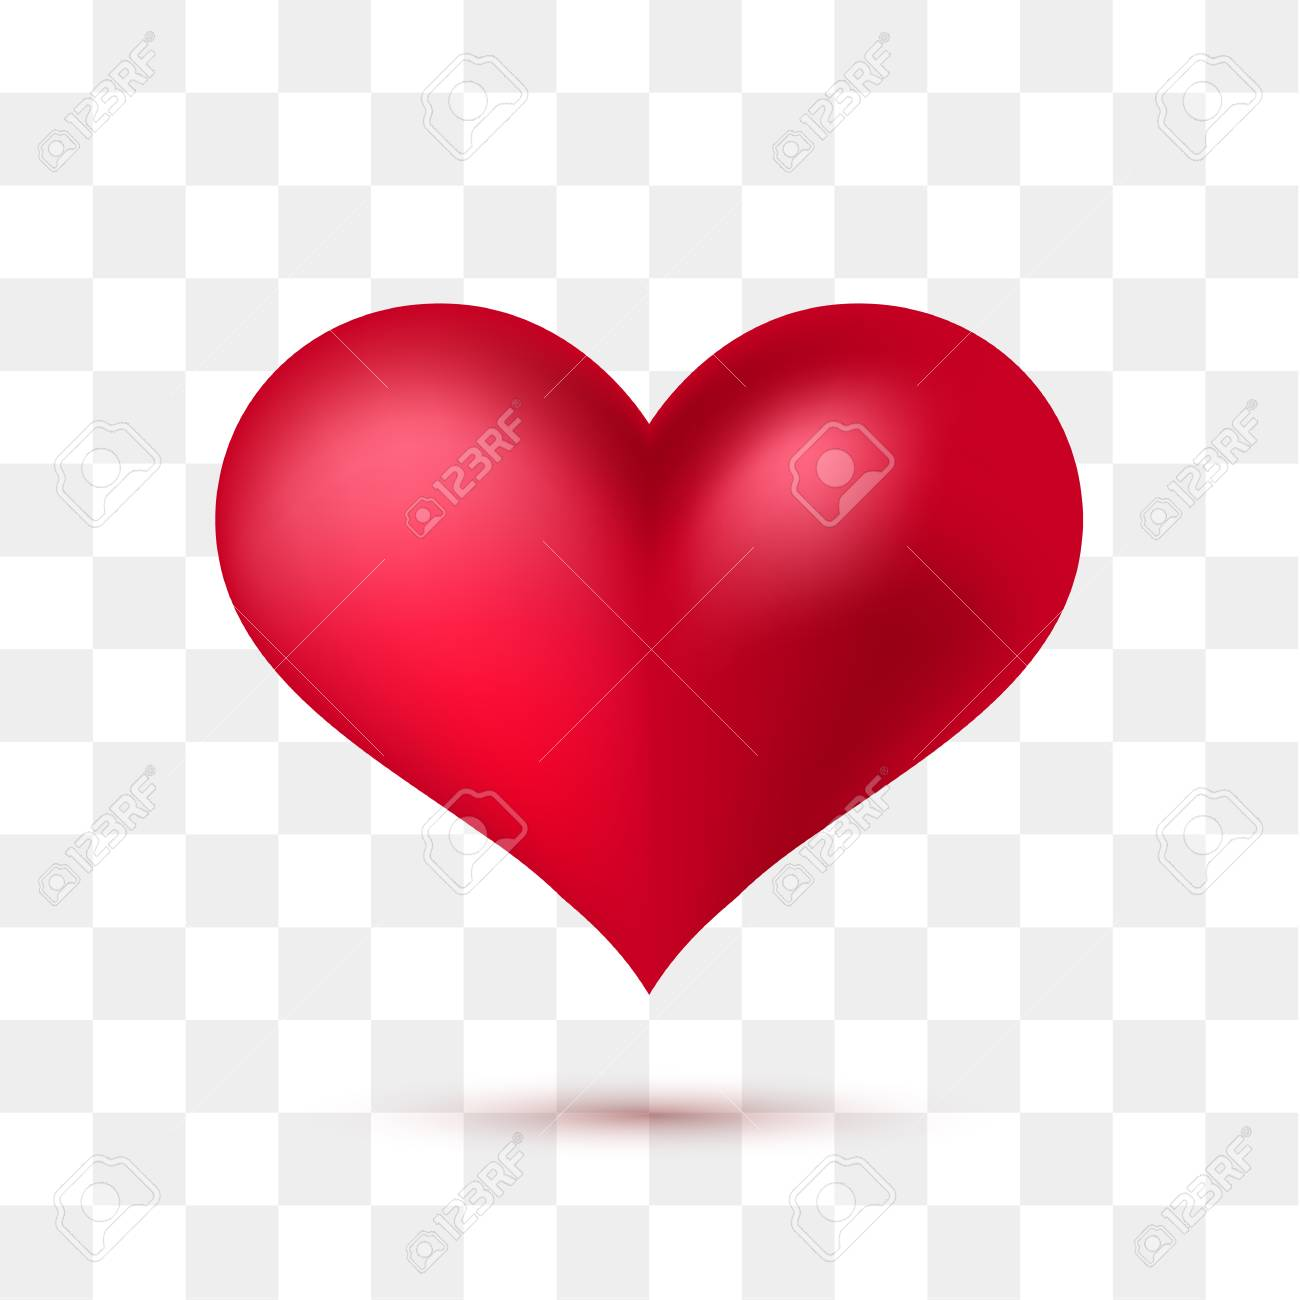 Soft red heart with transparent background. Vector illustration - 93241601